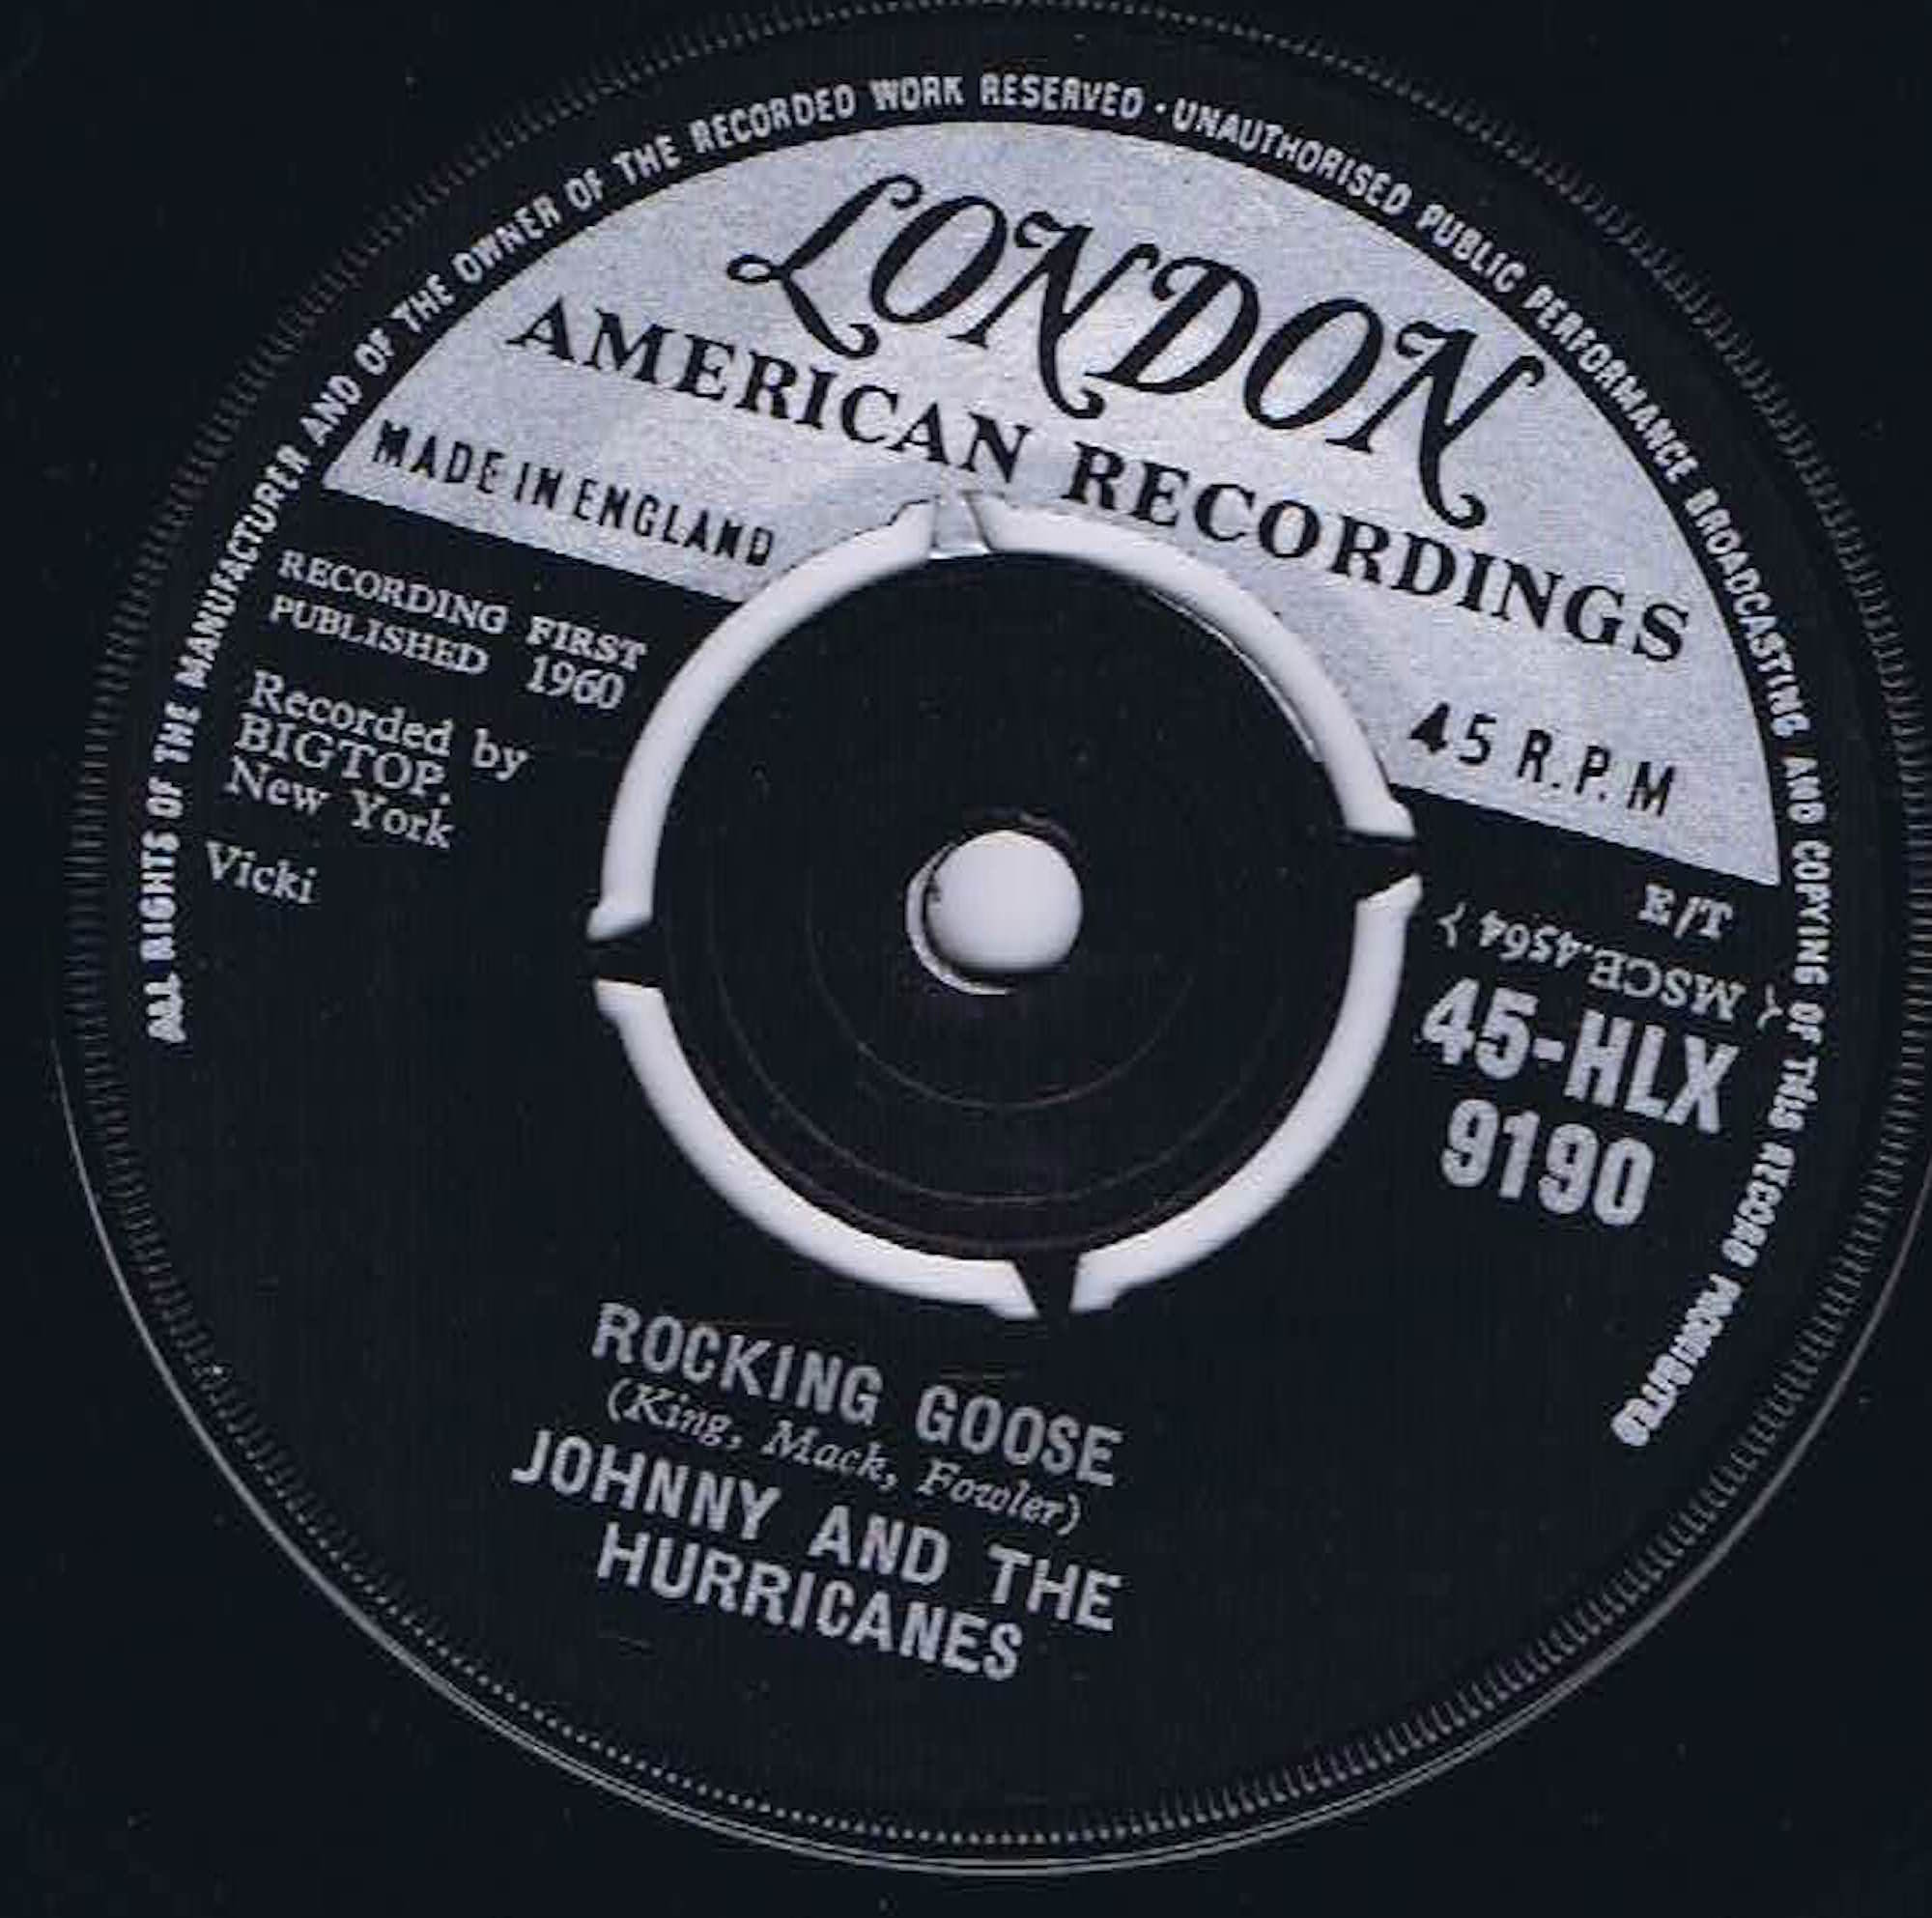 Johnny And The Hurricanes - Rocking Goose - 45-HLX 9190 - 7-inch Vinyl  Record • Wax Vinyl Records